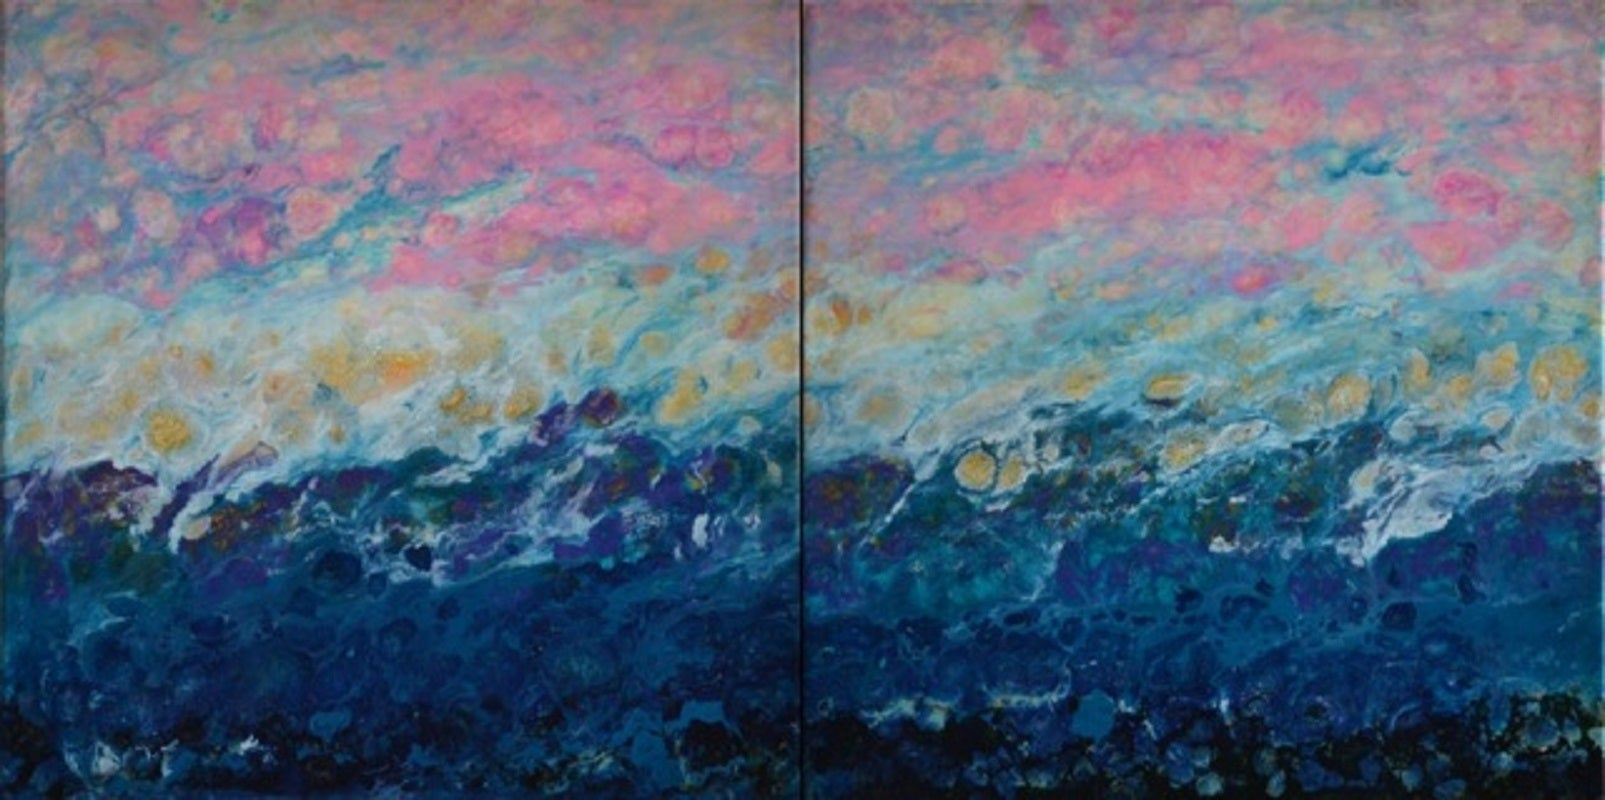 Lac Trouser, Blue, Abstract, Landscape, painting, Mixed Media, diptych, Pink